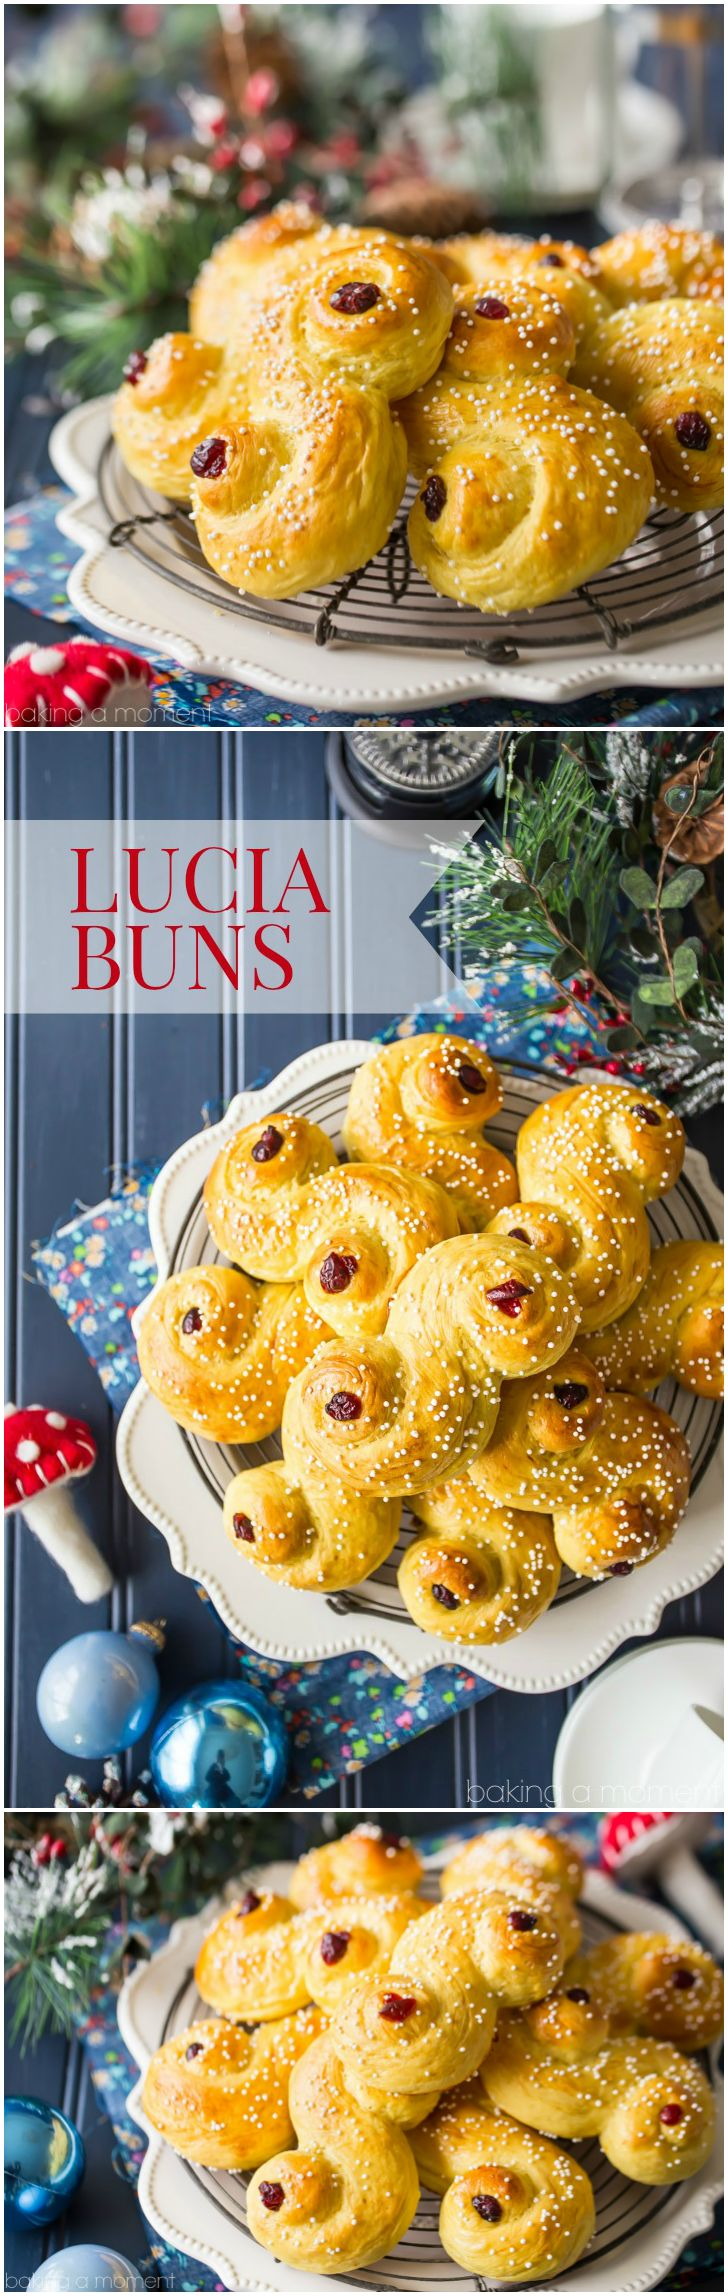 """Saffron yellow St. Lucia Buns in an """"S"""" shape, sprinkled with sugar and garnished with dried cranberries, on a cooling rack with a dark blue background with Christmas decorations."""